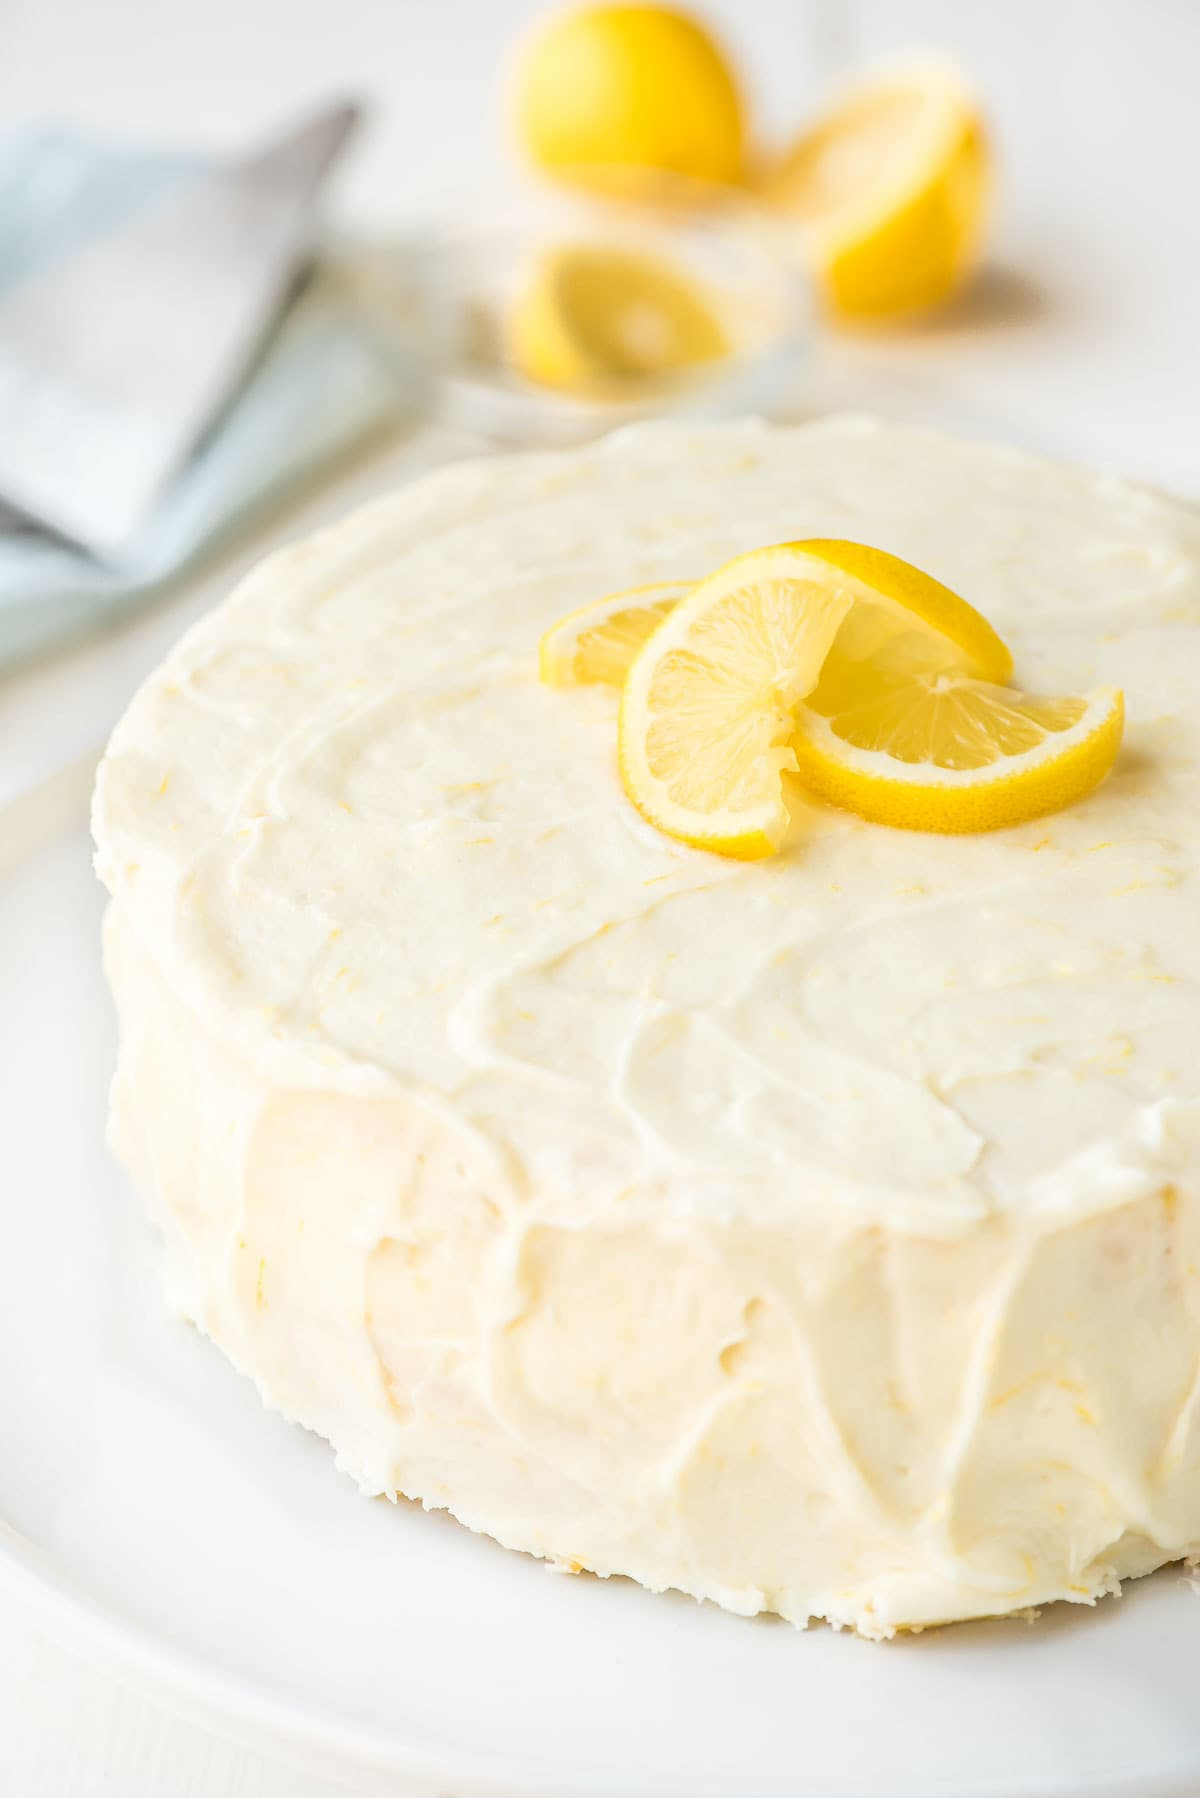 Cake With Cream Frosting : Lemon Layer Cake With Lemon Cream Cheese Frosting Recipe ...